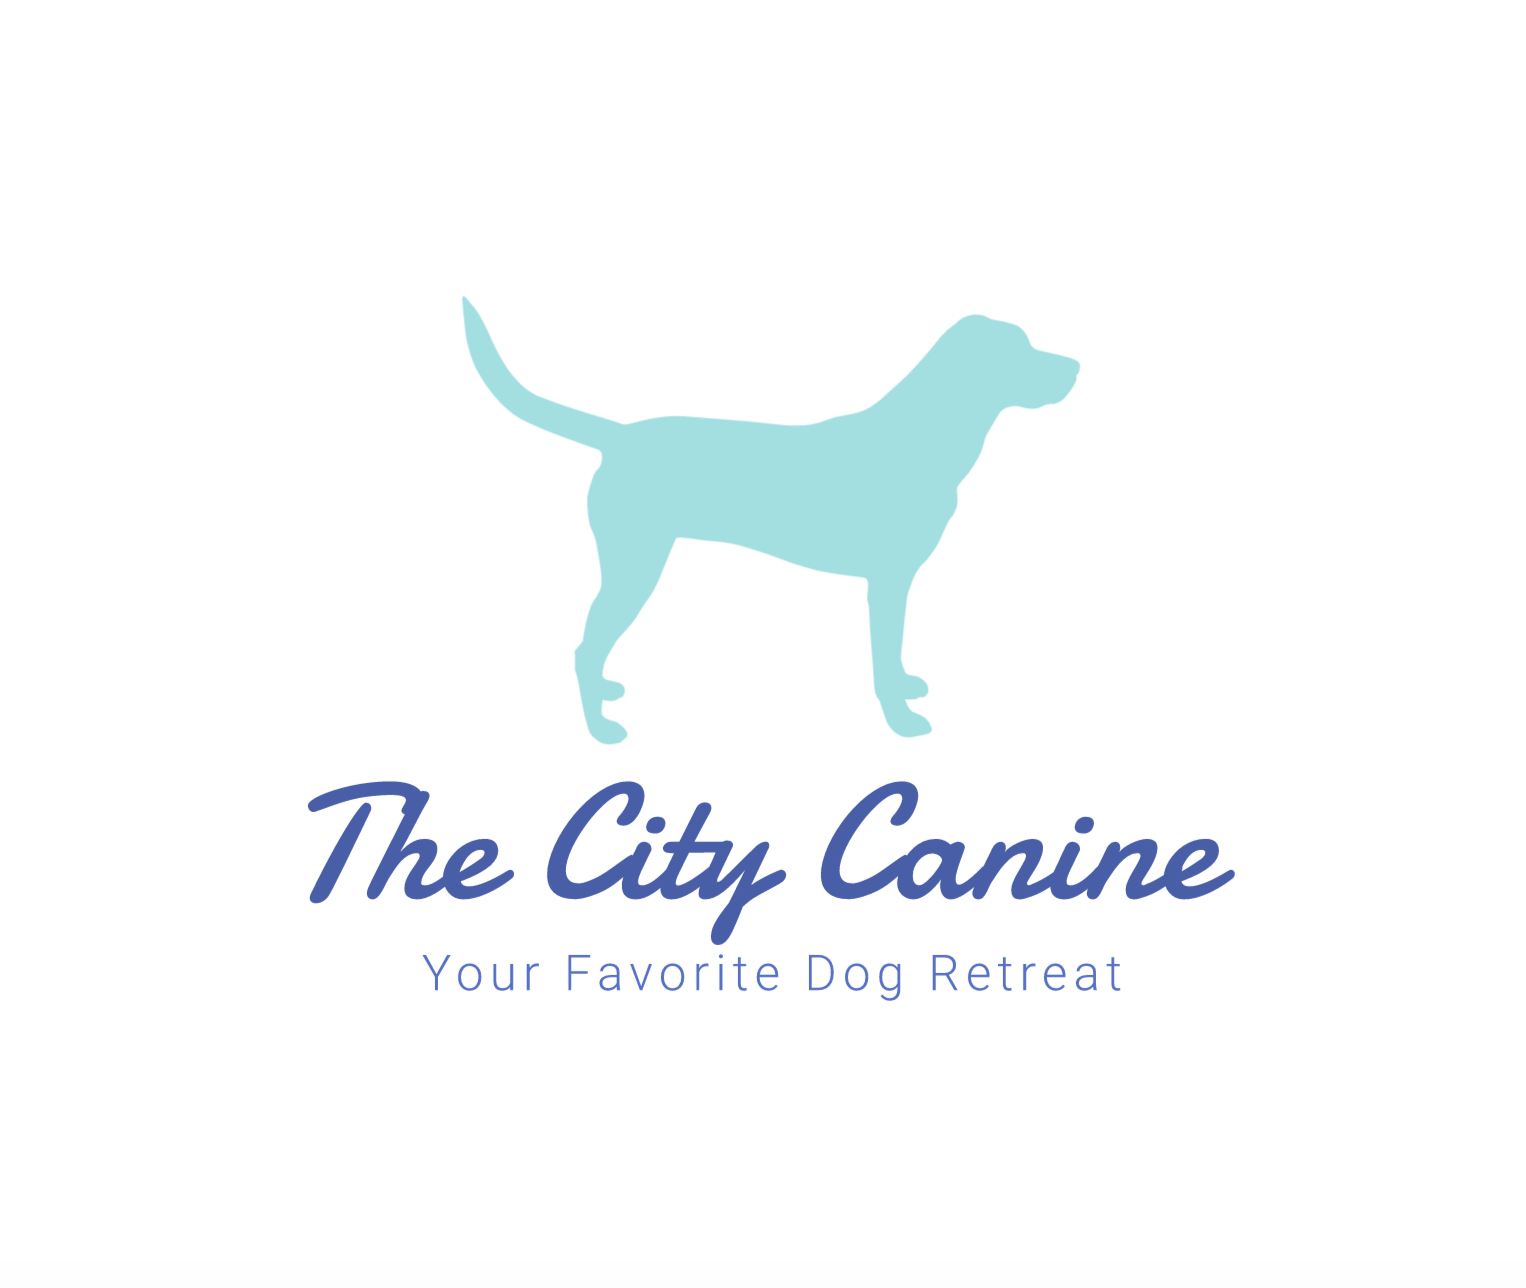 Logo made with Wix Logo Maker - The City Canine